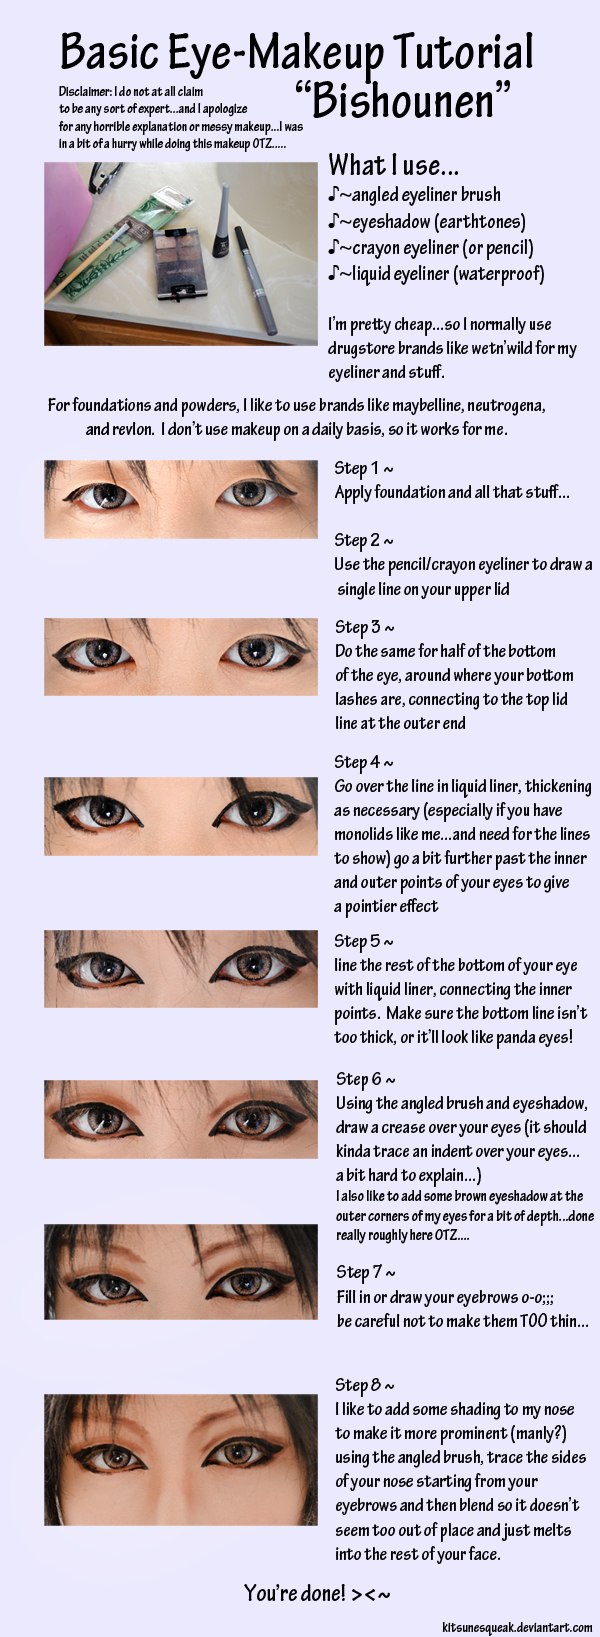 Eye makeup tutorial pretty boy by kitsunesqueak on deviantart eye makeup tutorial pretty boy by kitsunesqueak baditri Choice Image